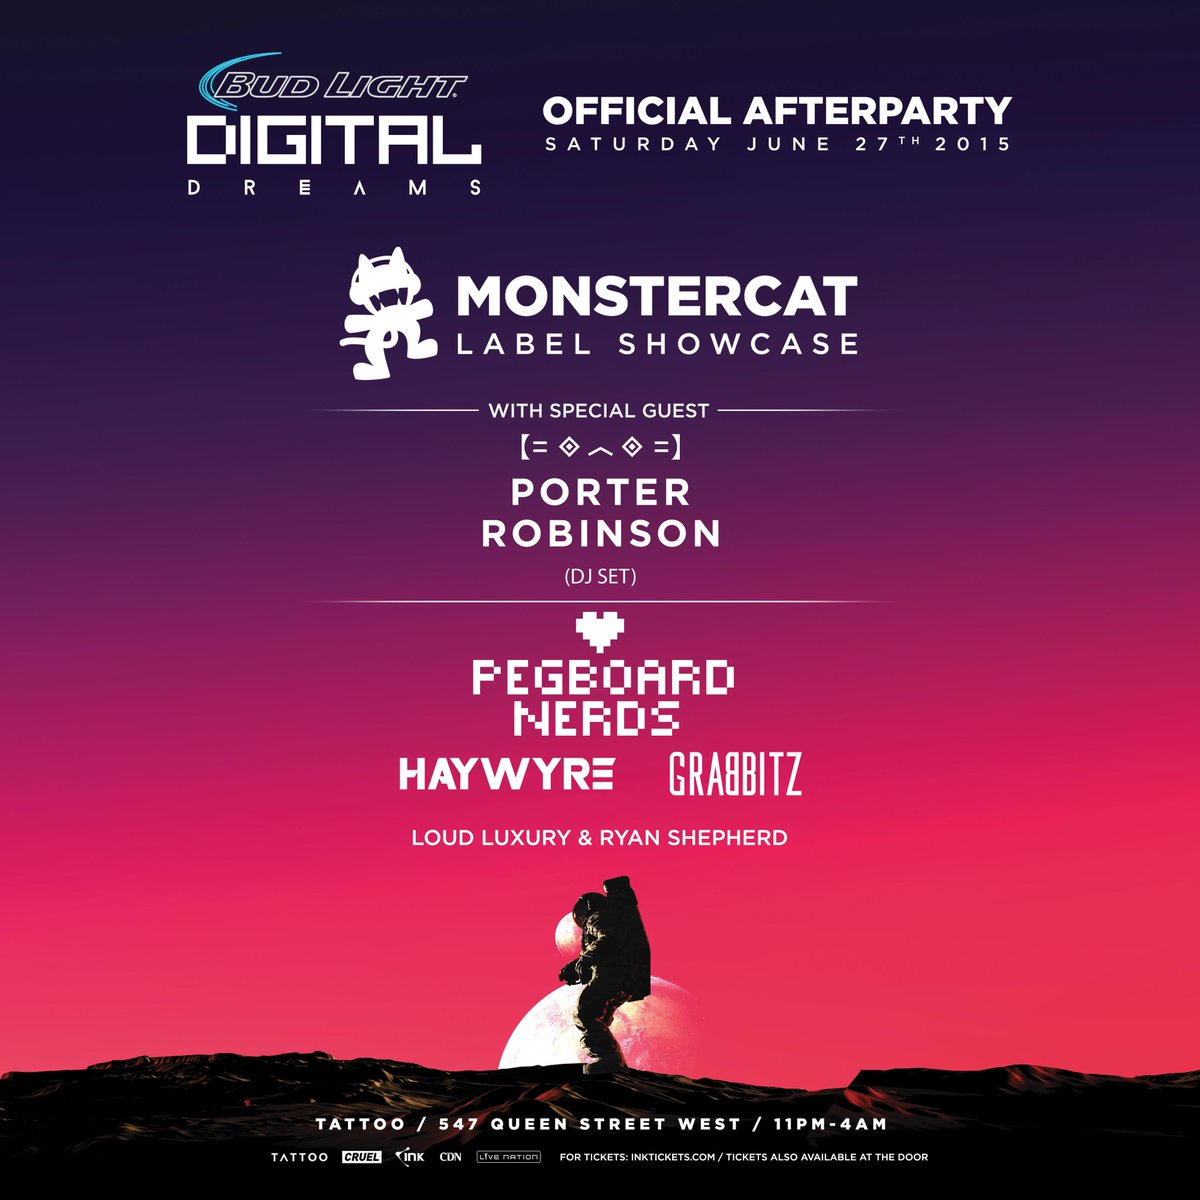 Tonight! Special guest @porterrobinson alongside the @Monstercat Family to take over the @DigiDreamsFest AP! http://t.co/mUNNBIqkj1